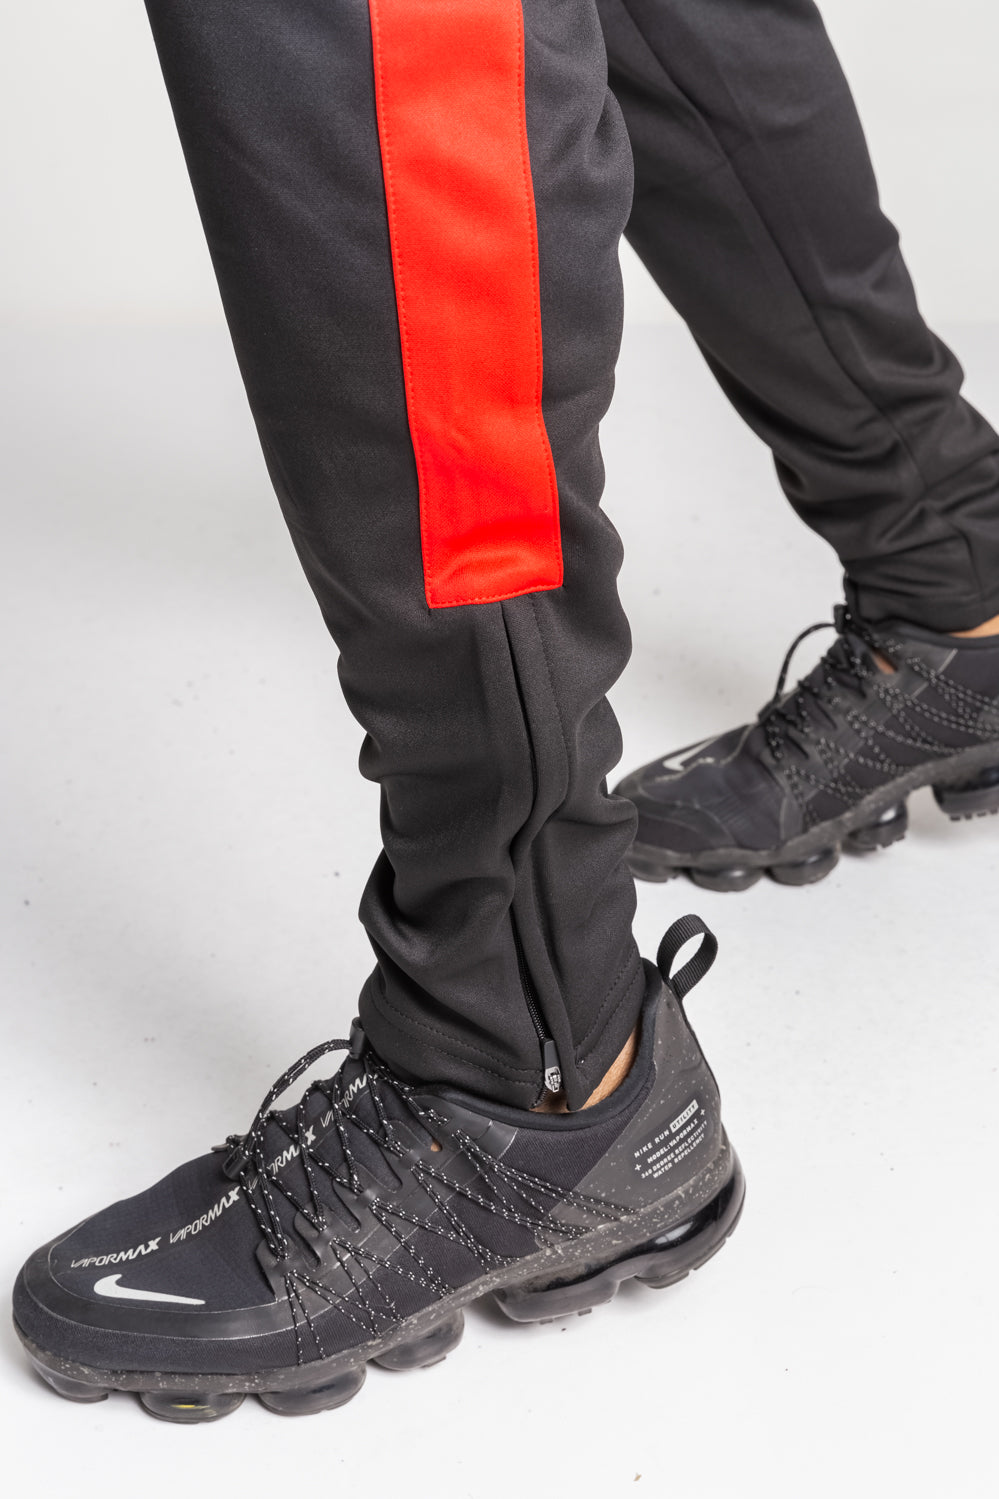 Urban Bottoms - Black/Red